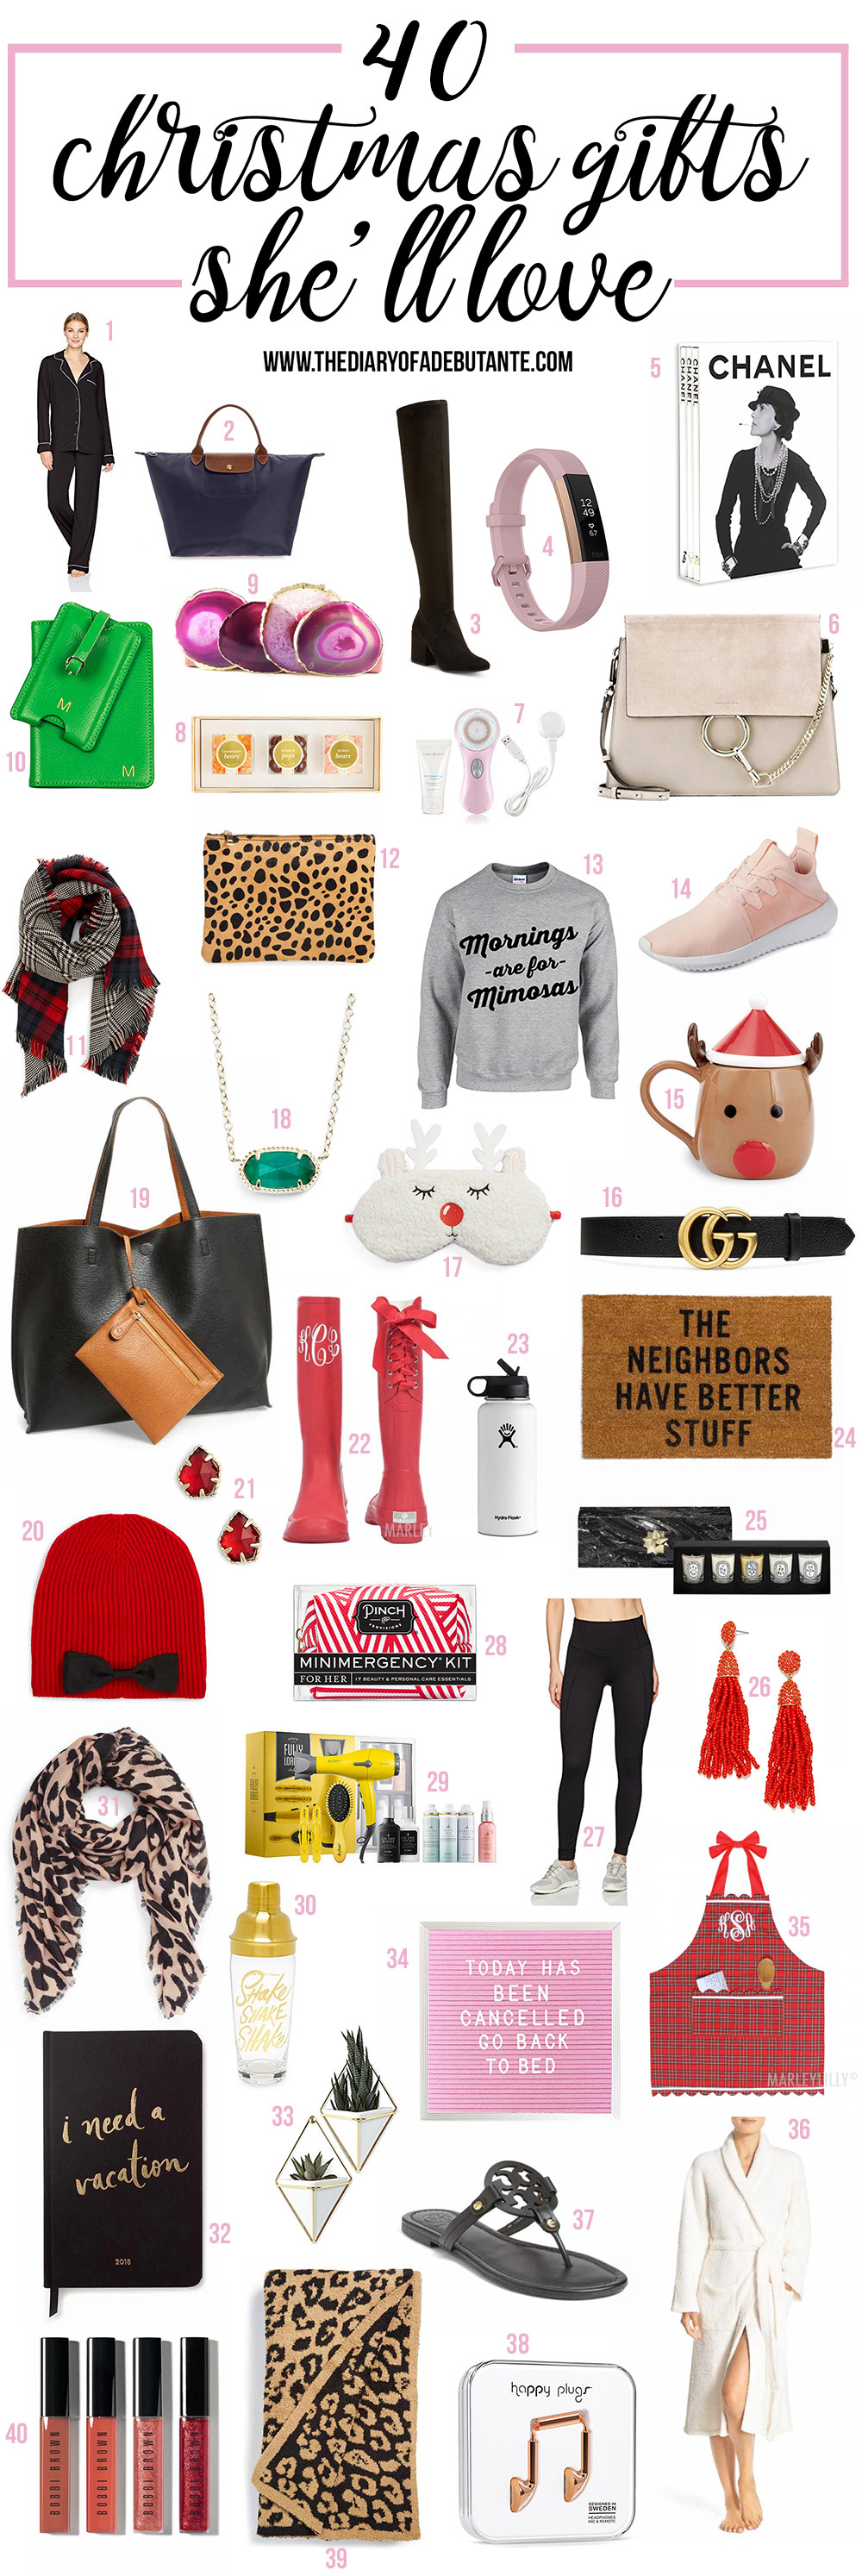 Best ideas about Holiday Gift Ideas For Girlfriend . Save or Pin Cool Gift Ideas for Girlfriend Mom or BFF this Holiday Now.